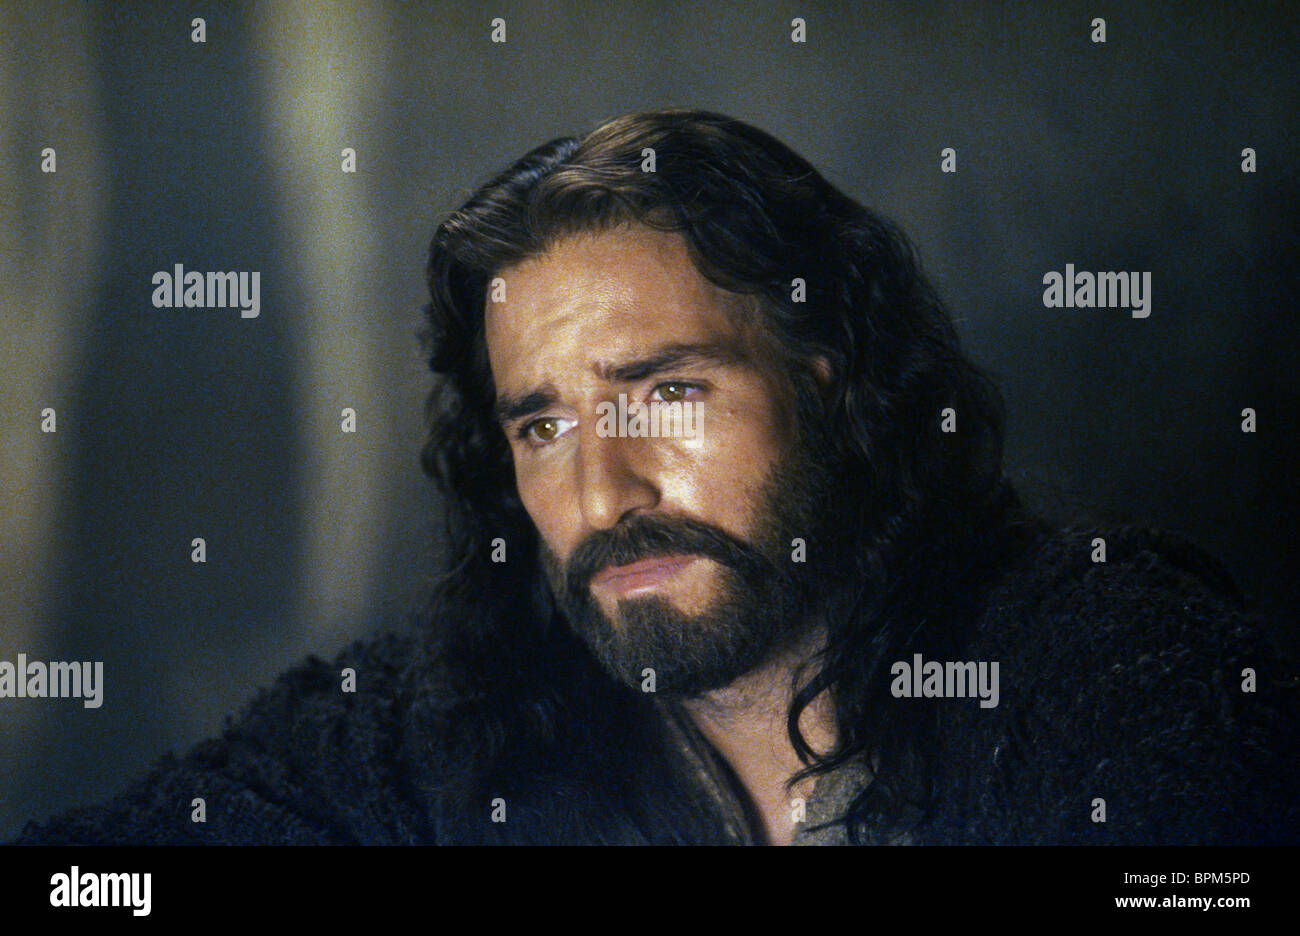 JIM CAVIEZEL THE PASSION OF THE CHRIST (2004) - Stock Image